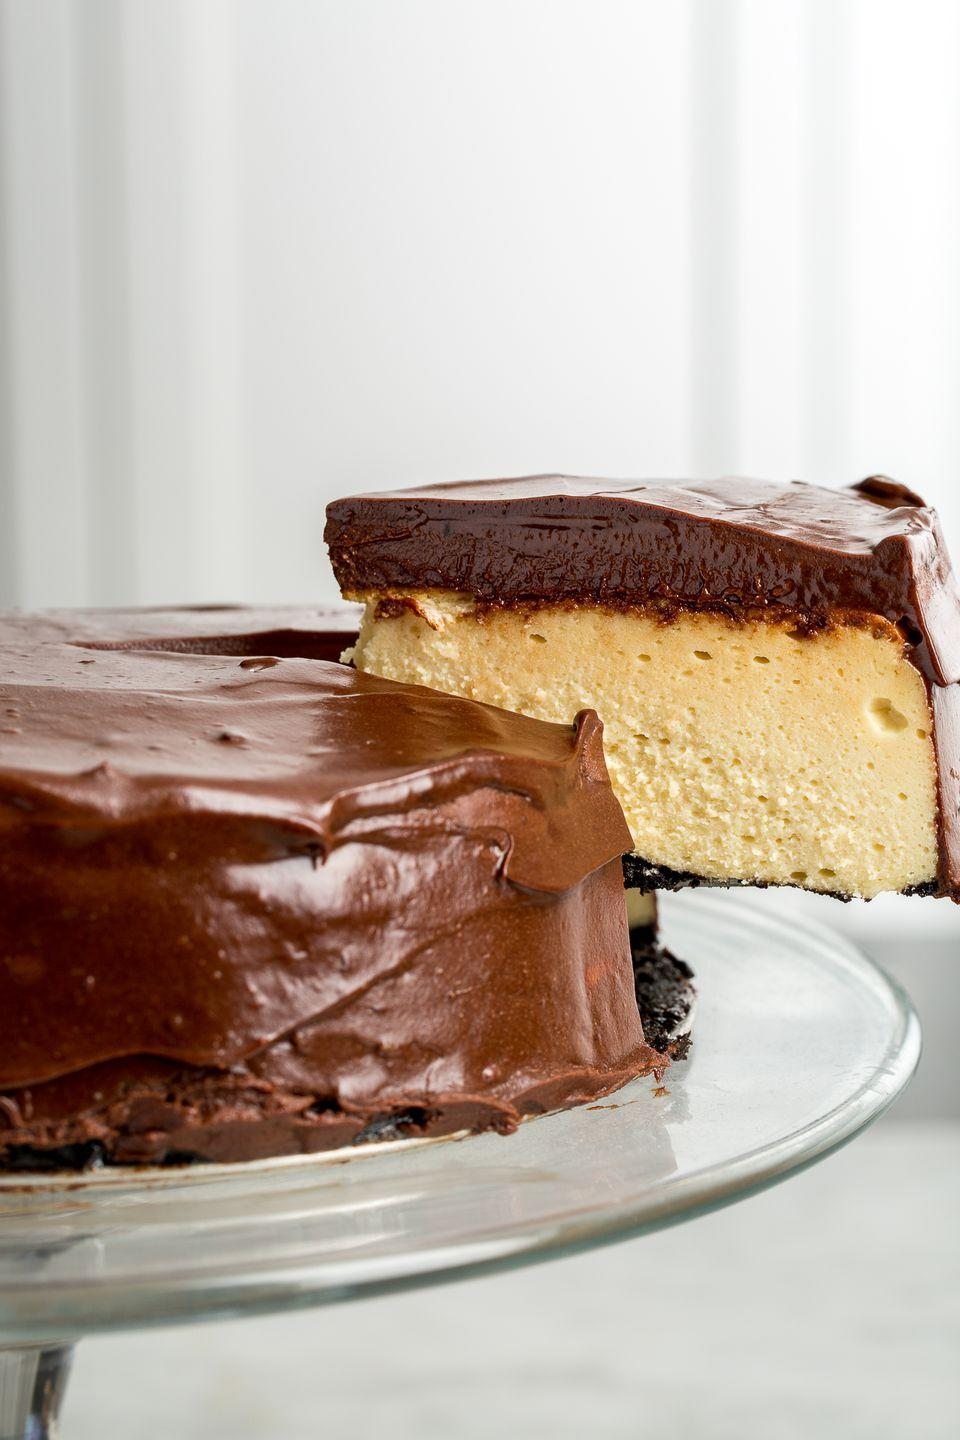 """<p>This fudgy cheesecake deserves to be eaten way beyond St. Patty's Day.</p><p>Get the recipe from <a href=""""/cooking/recipe-ideas/recipes/a46303/baileys-cheesecake-recipe/"""" data-ylk=""""slk:Delish"""" class=""""link rapid-noclick-resp"""">Delish</a>.</p>"""